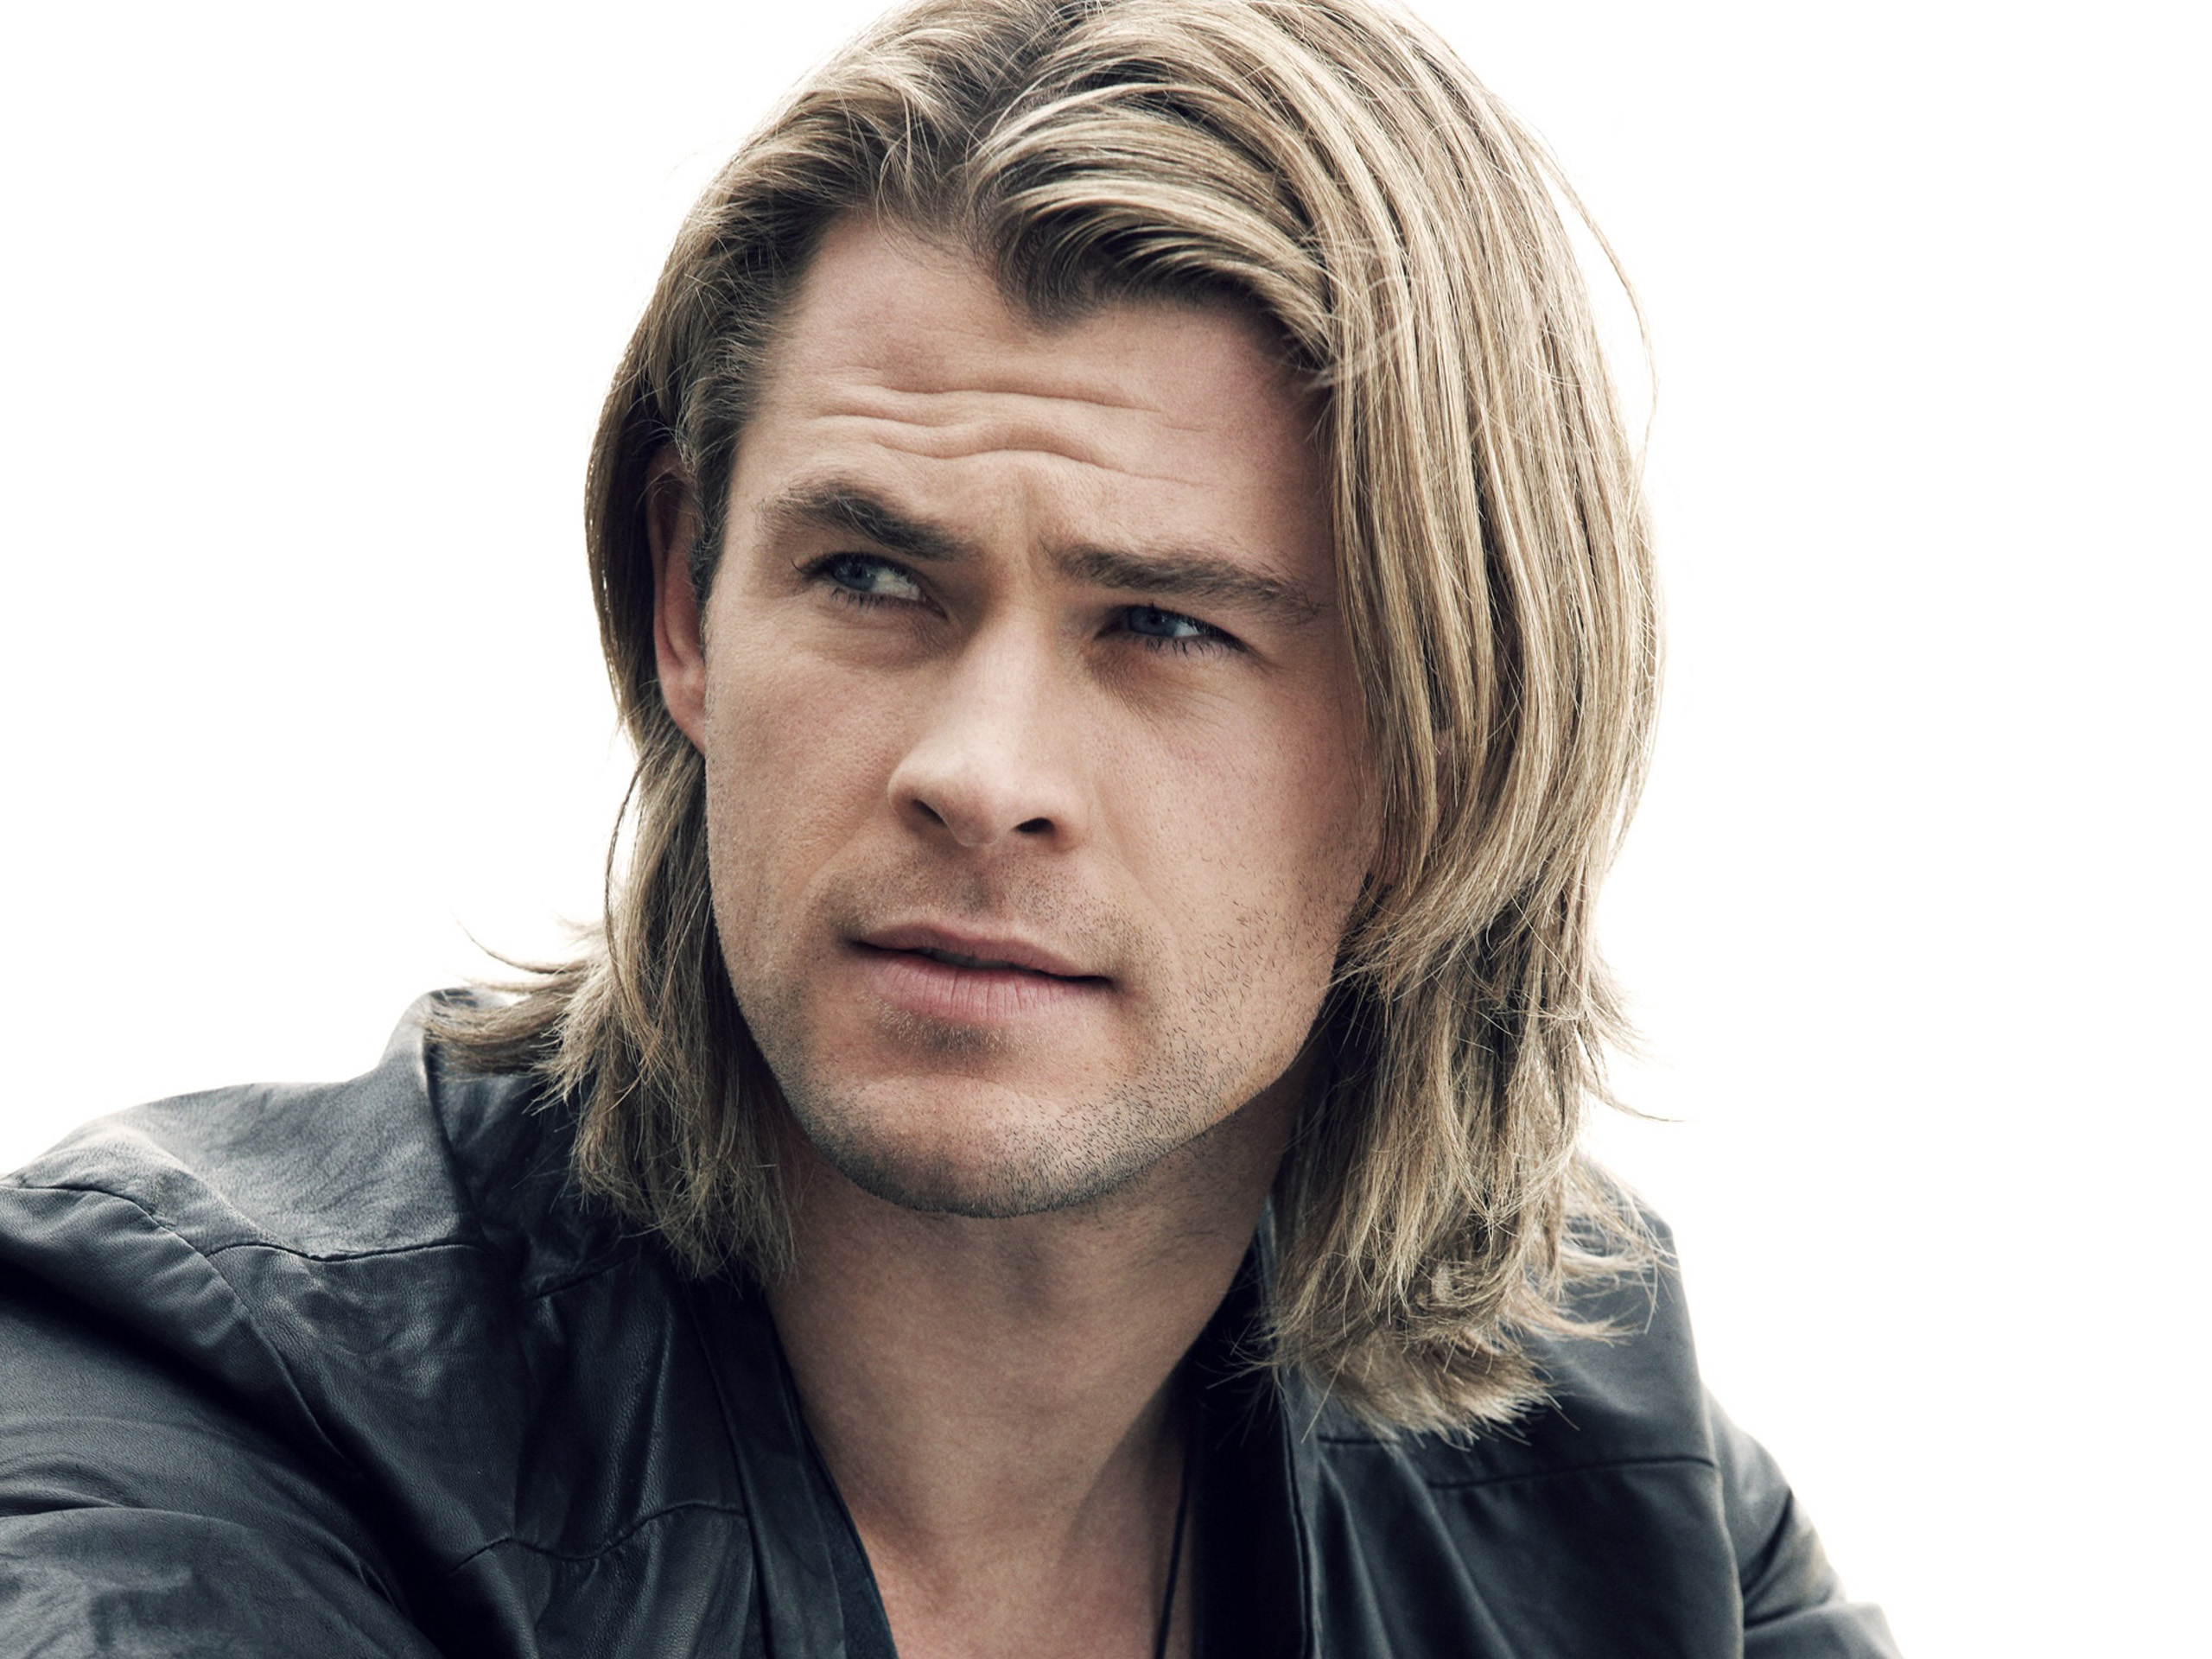 Chris Hemsworth #7